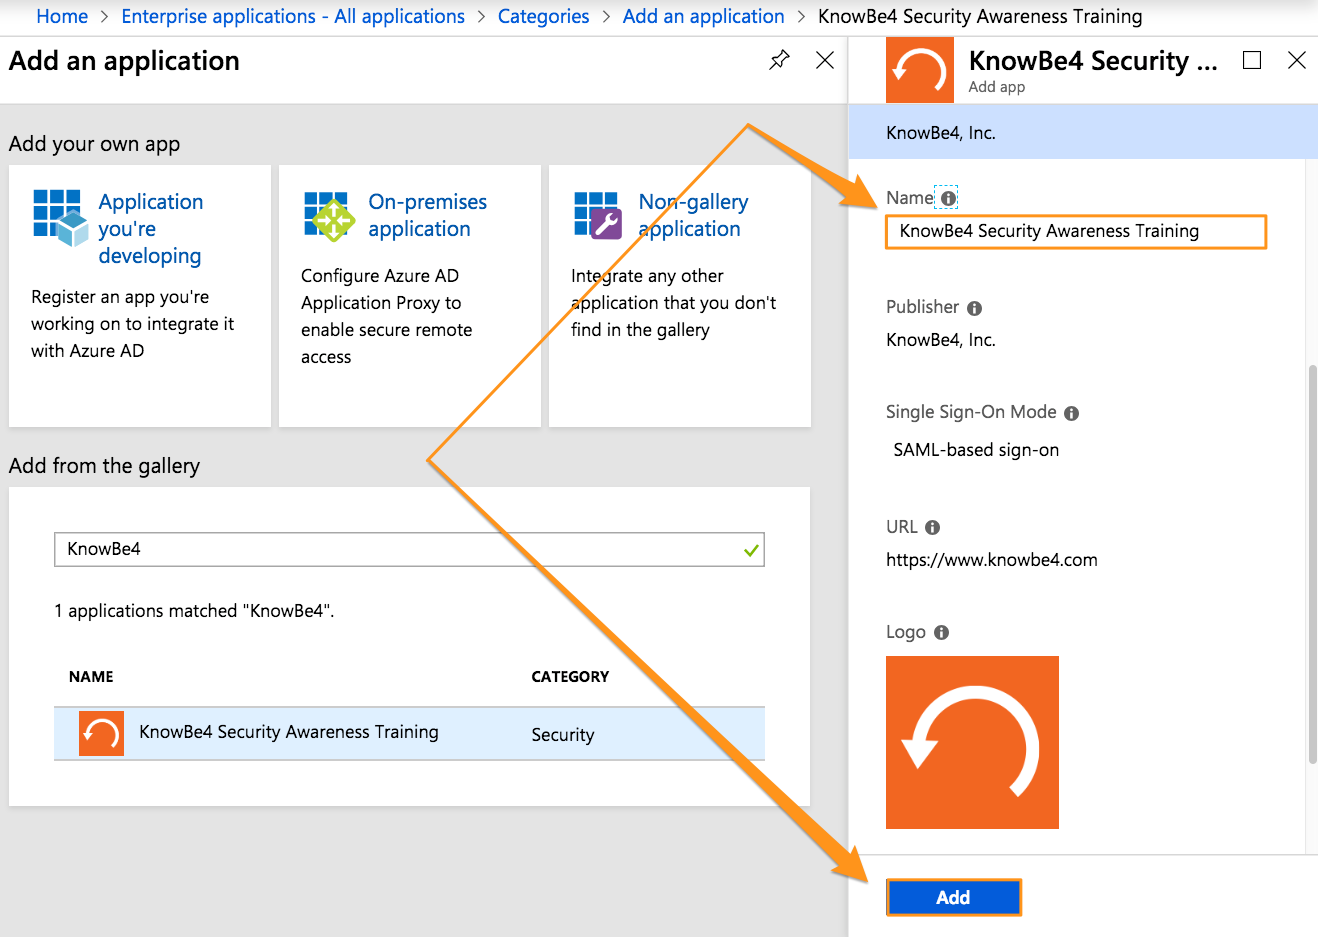 How Do I Enable SSO/SAML For Azure Active Directory (AD